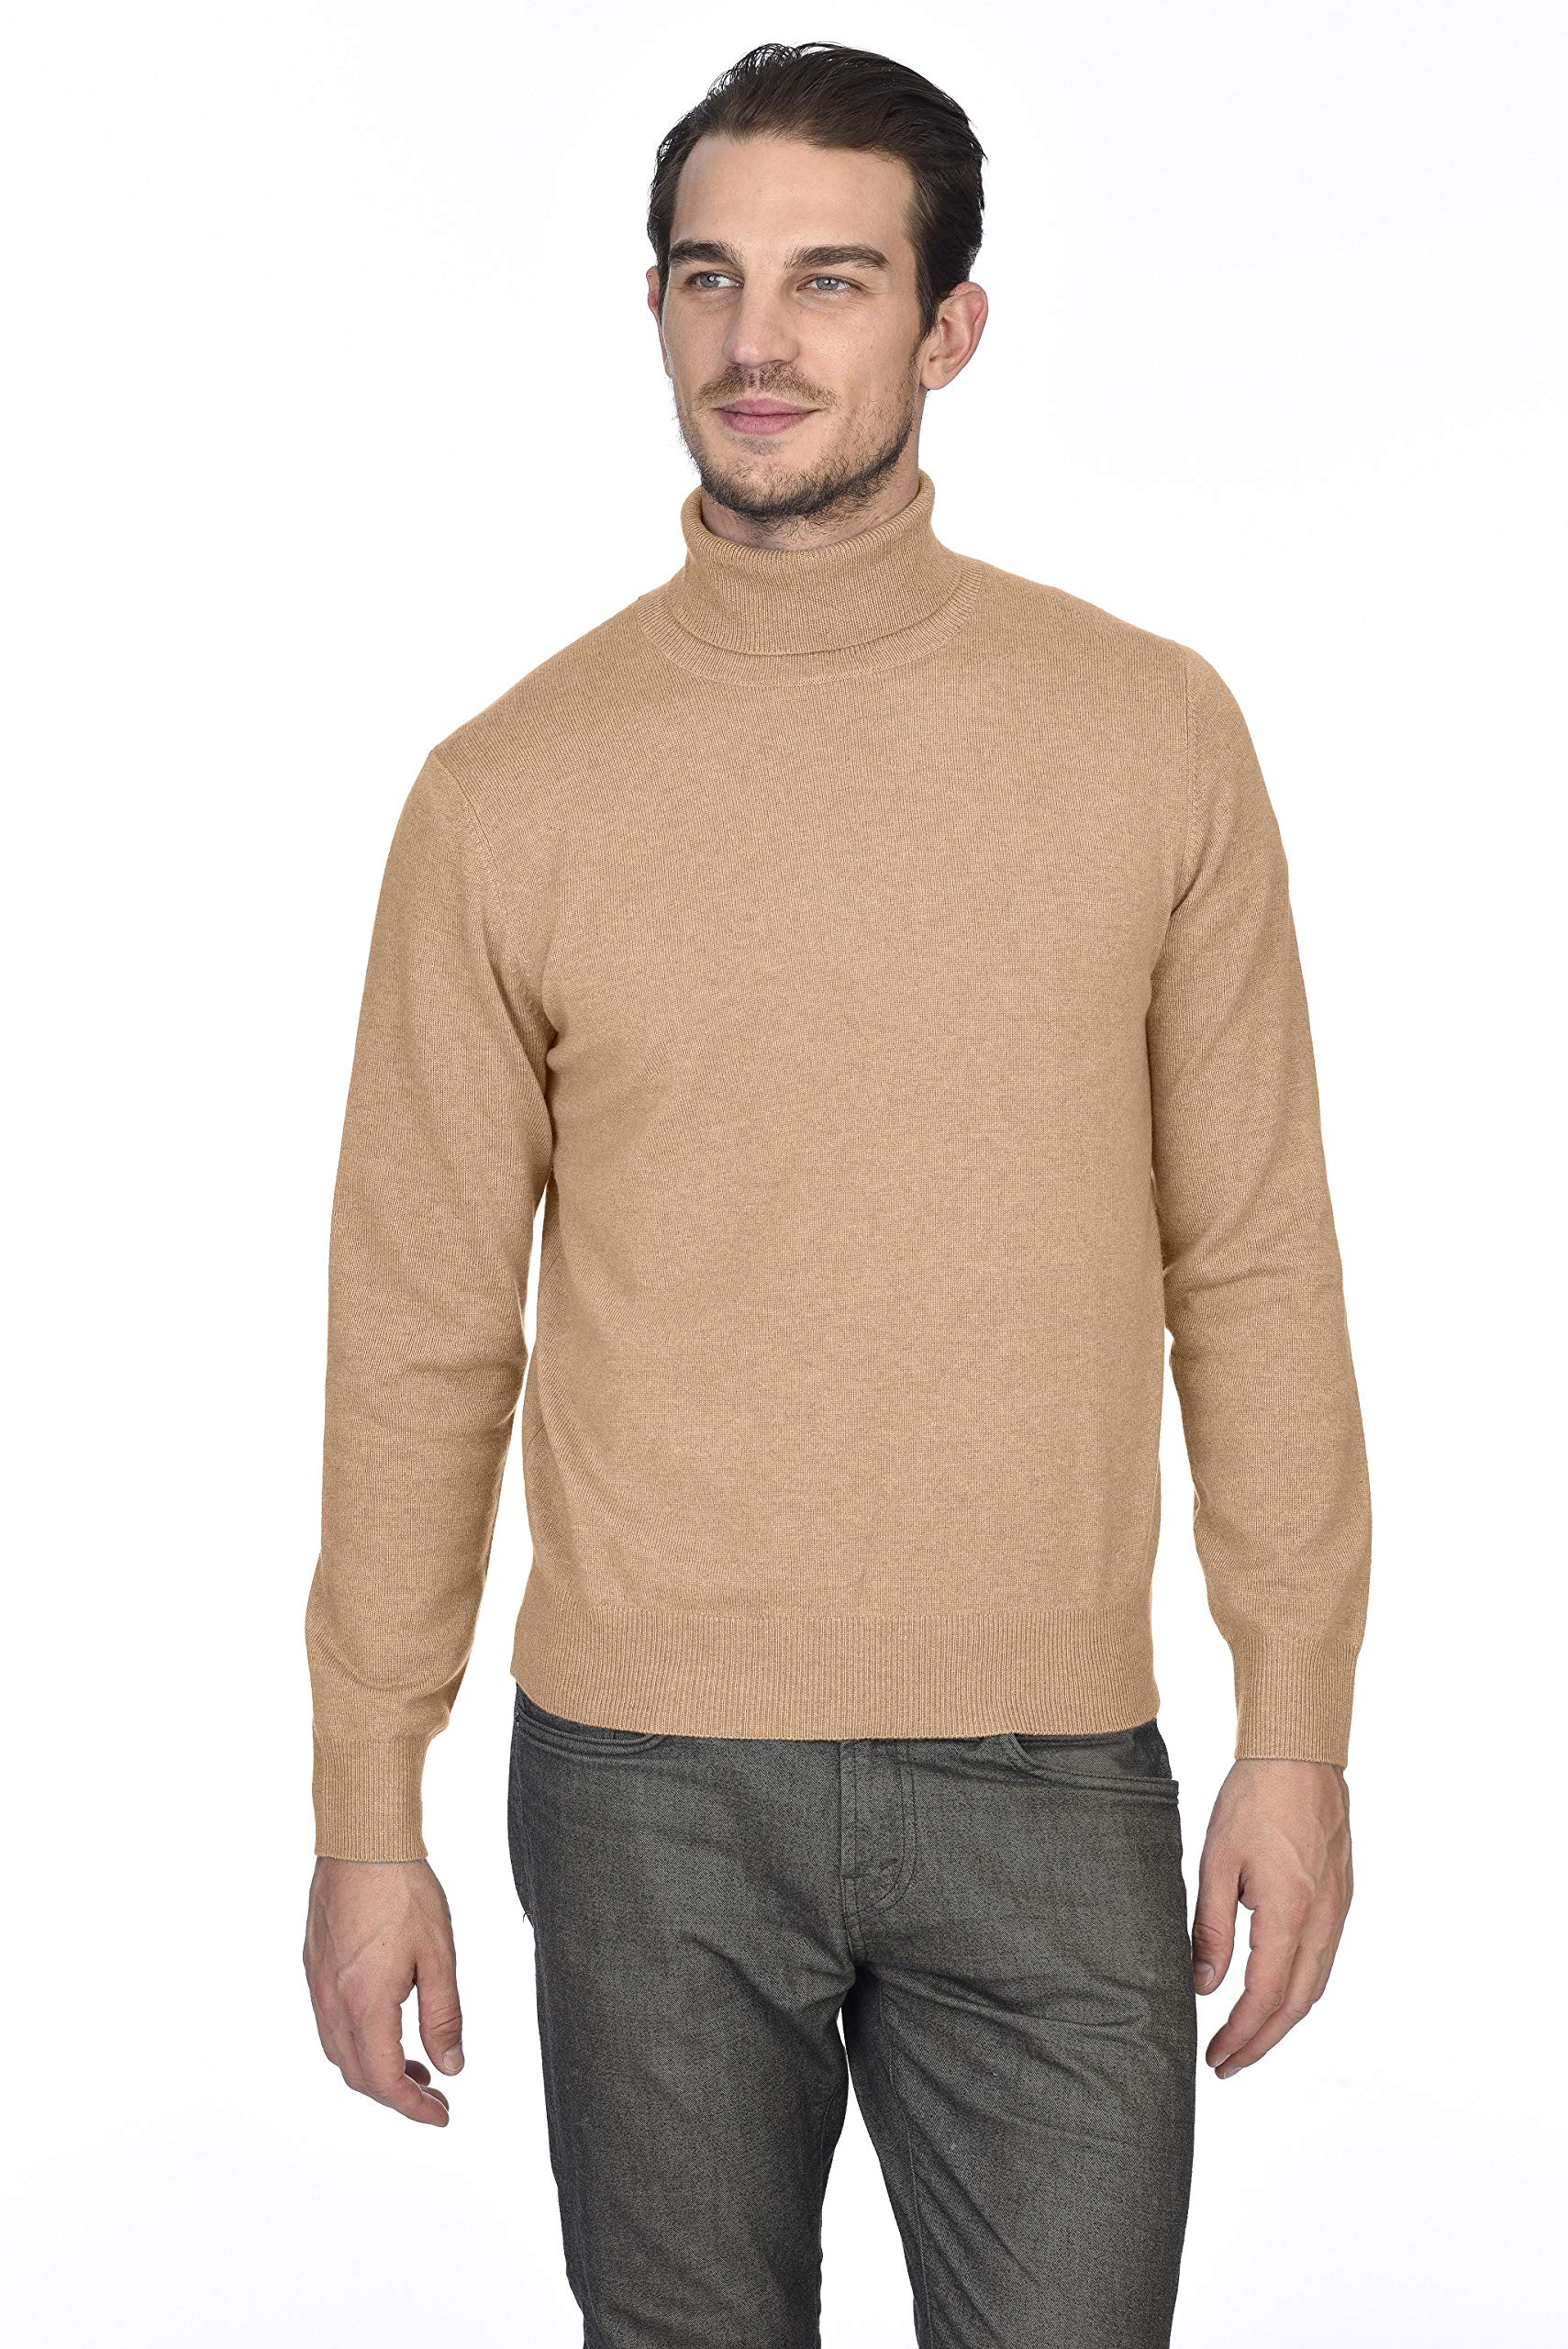 State Cashmere Men's 100% Pure Cashmere Turtleneck Long Sleeve Pullover Sweater (XX-Large, Camel)